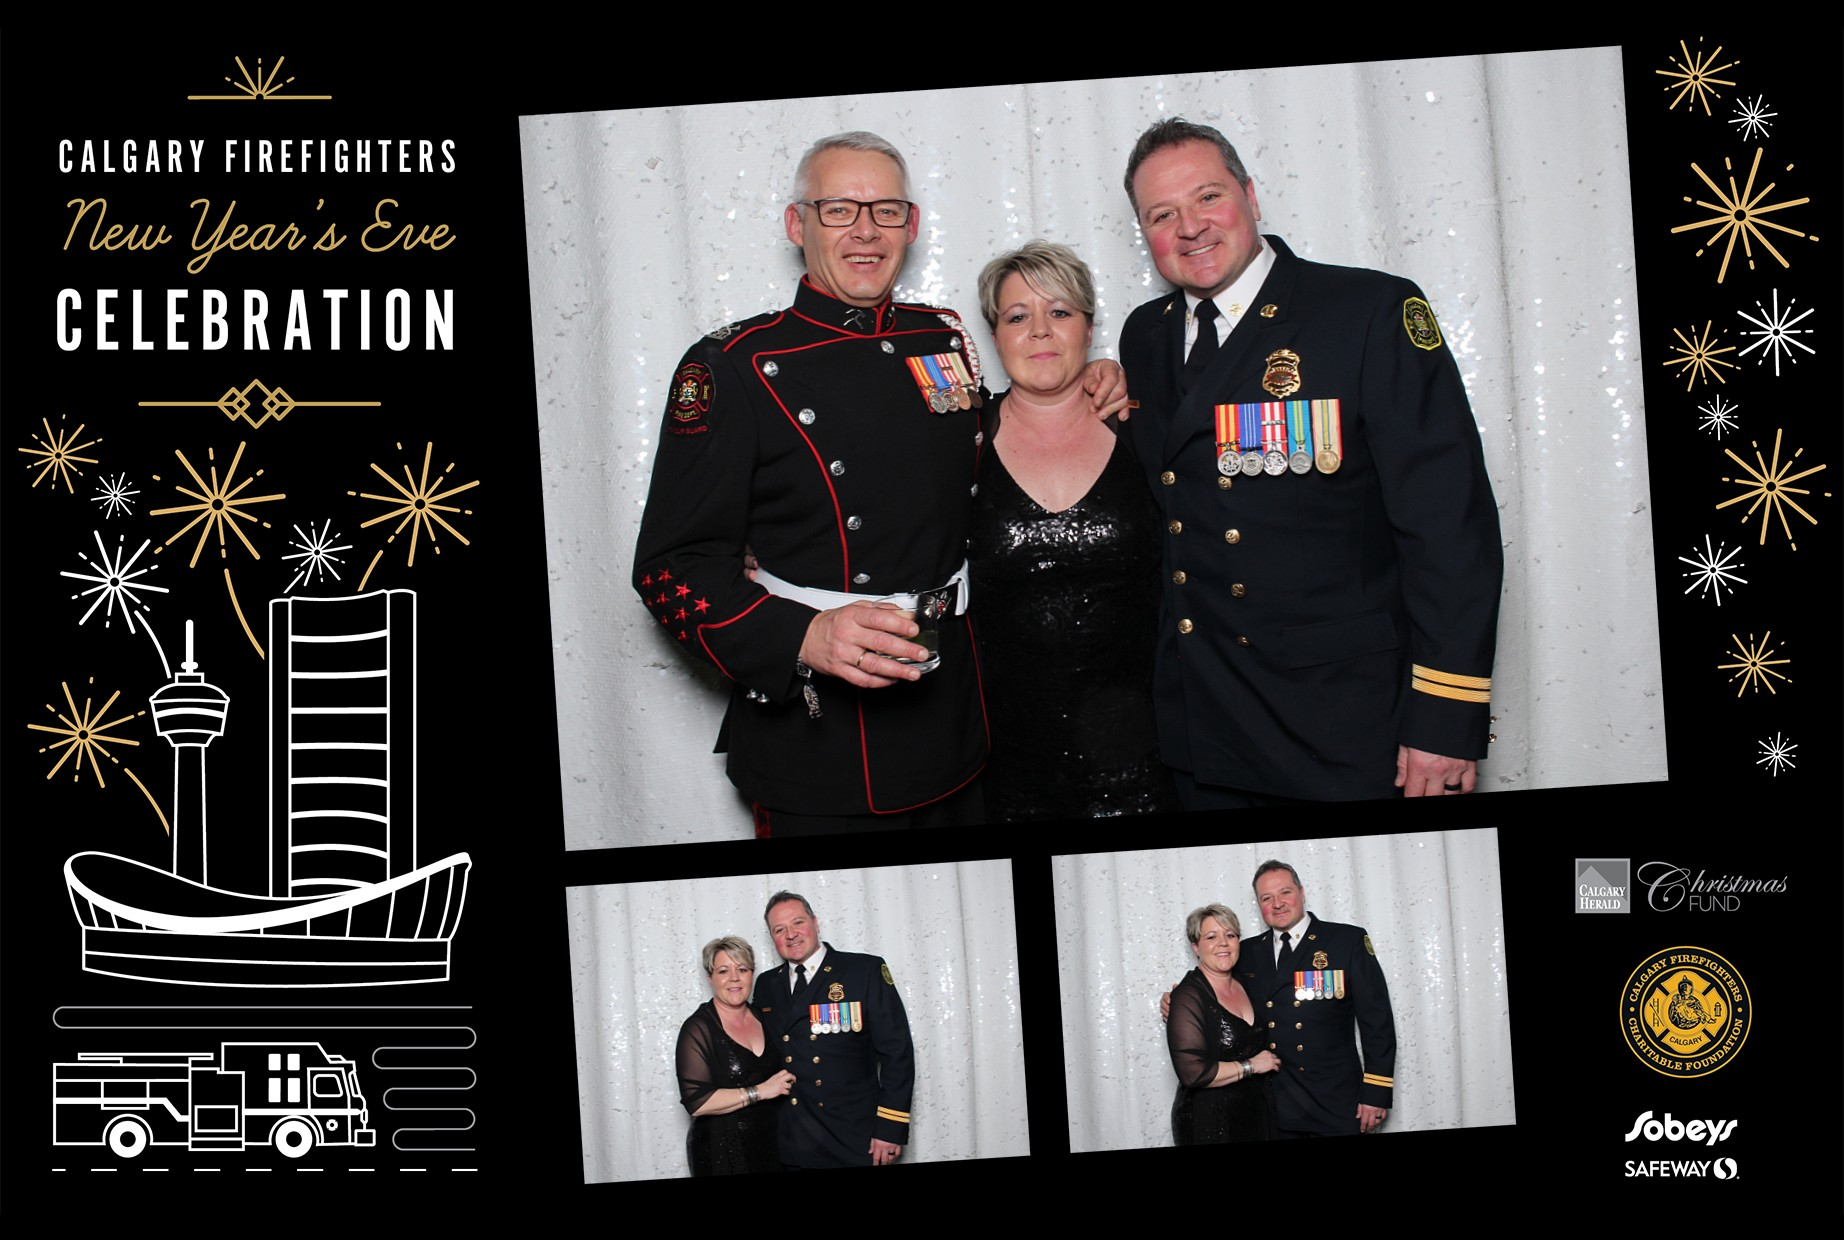 CalgaryFirefightersNYE-0215-PRINT.jpg